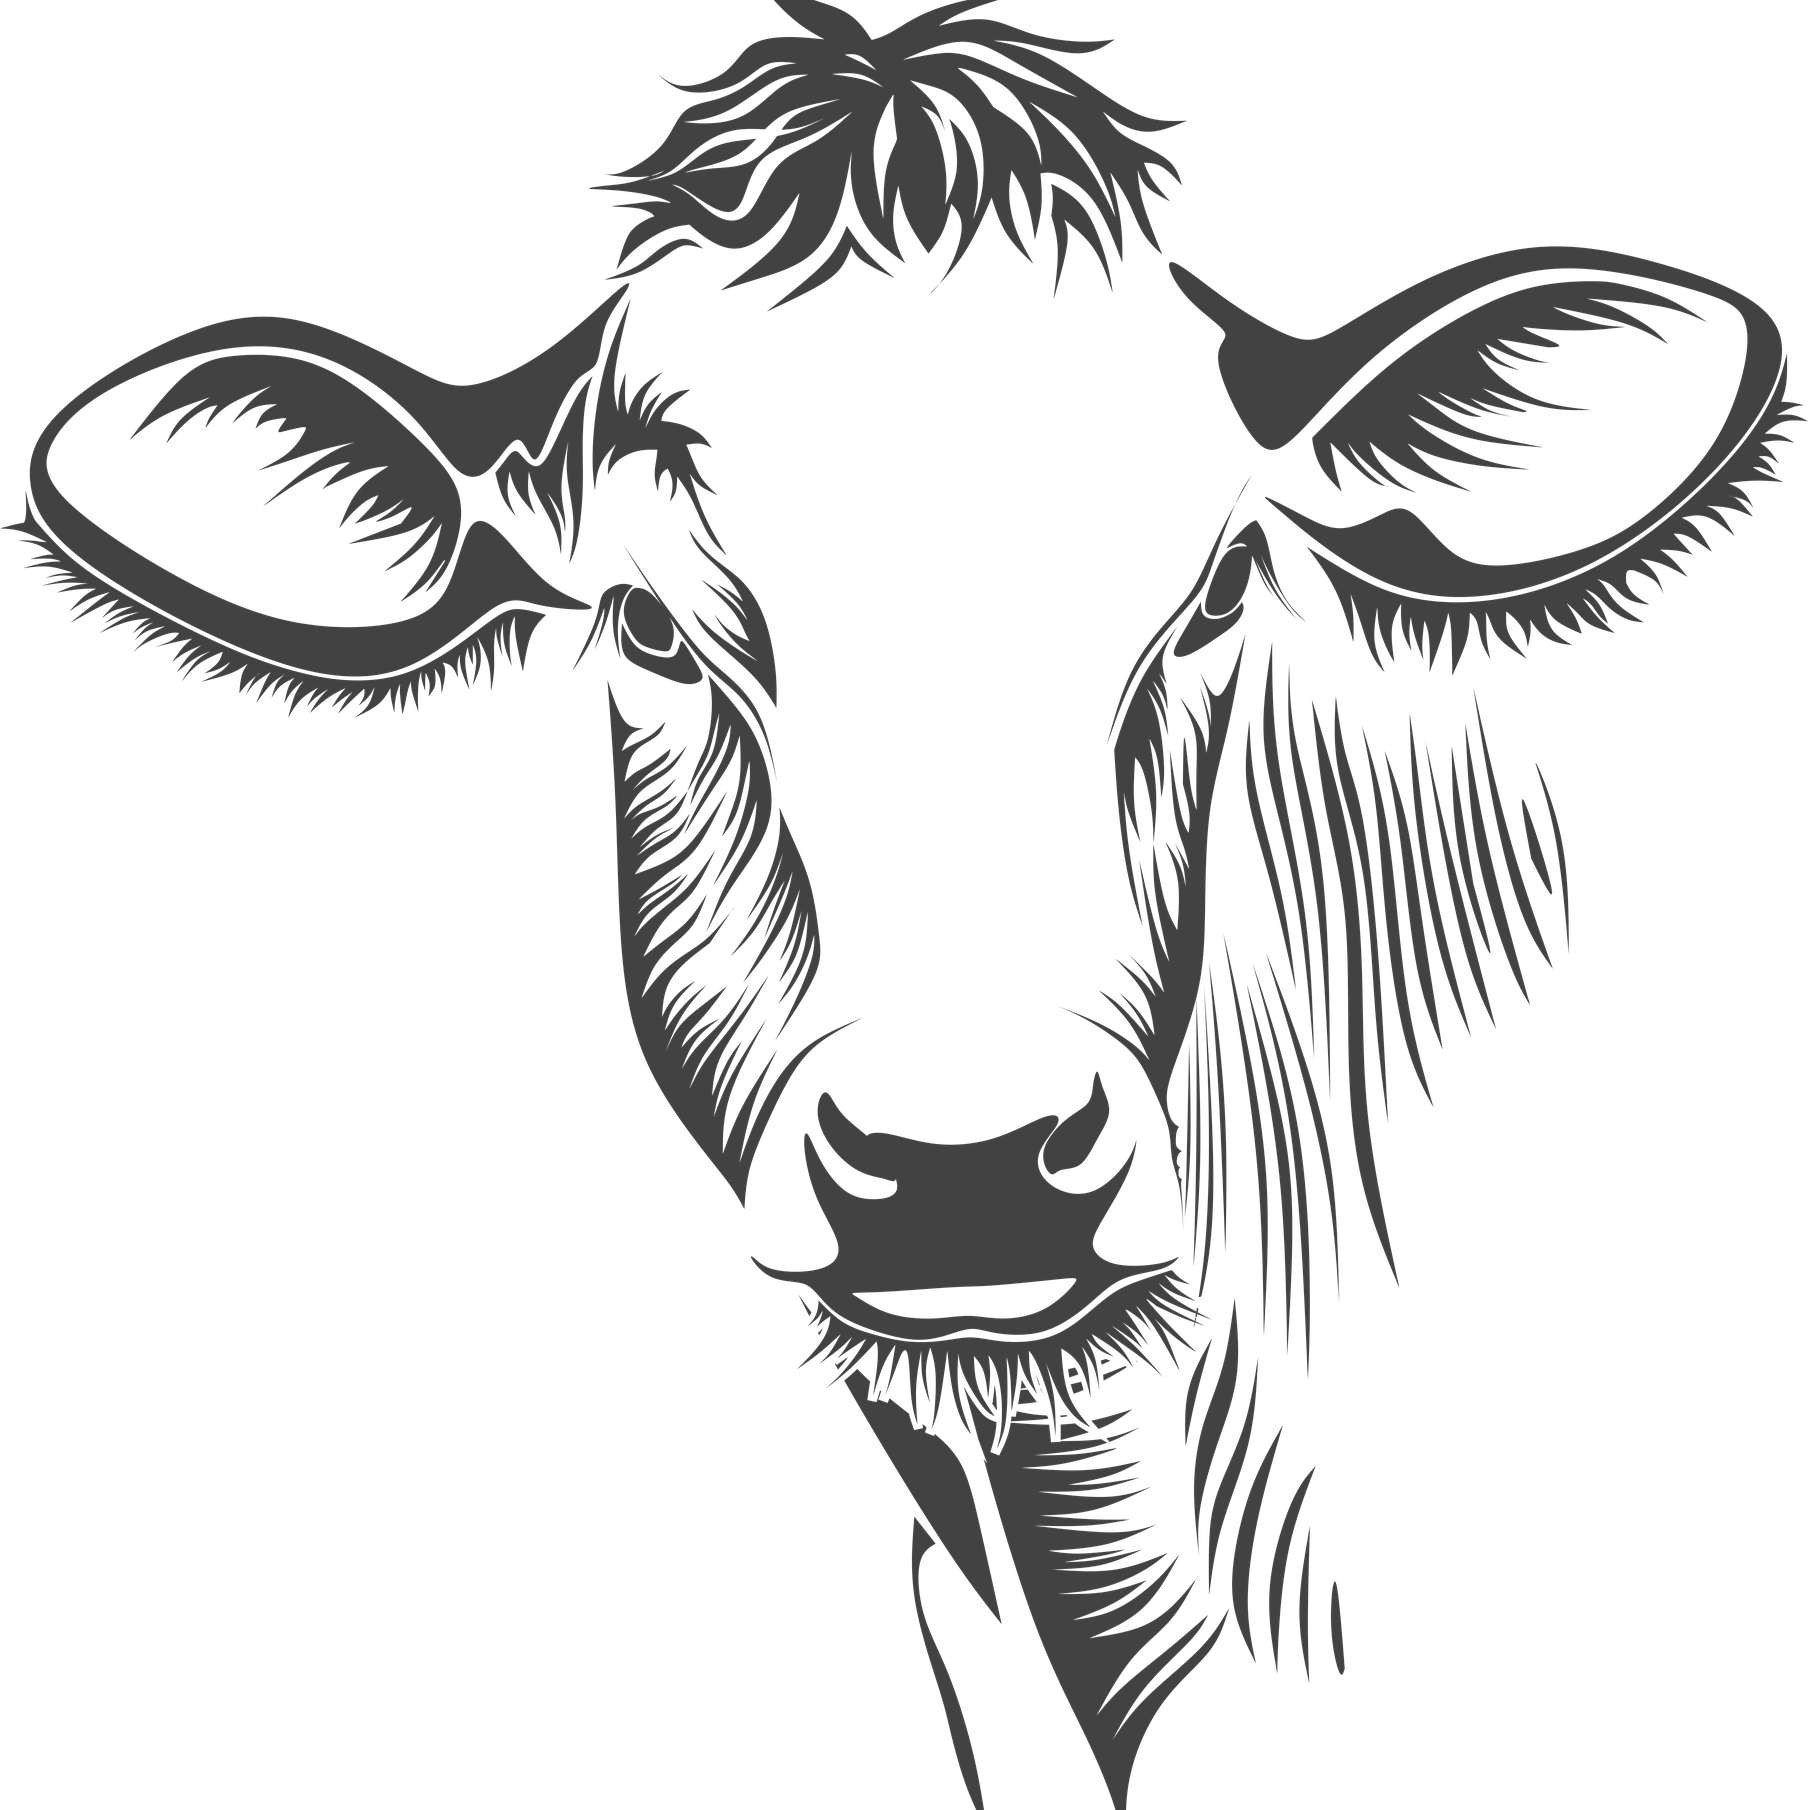 Off family ranch happy. Longhorn clipart zentangle